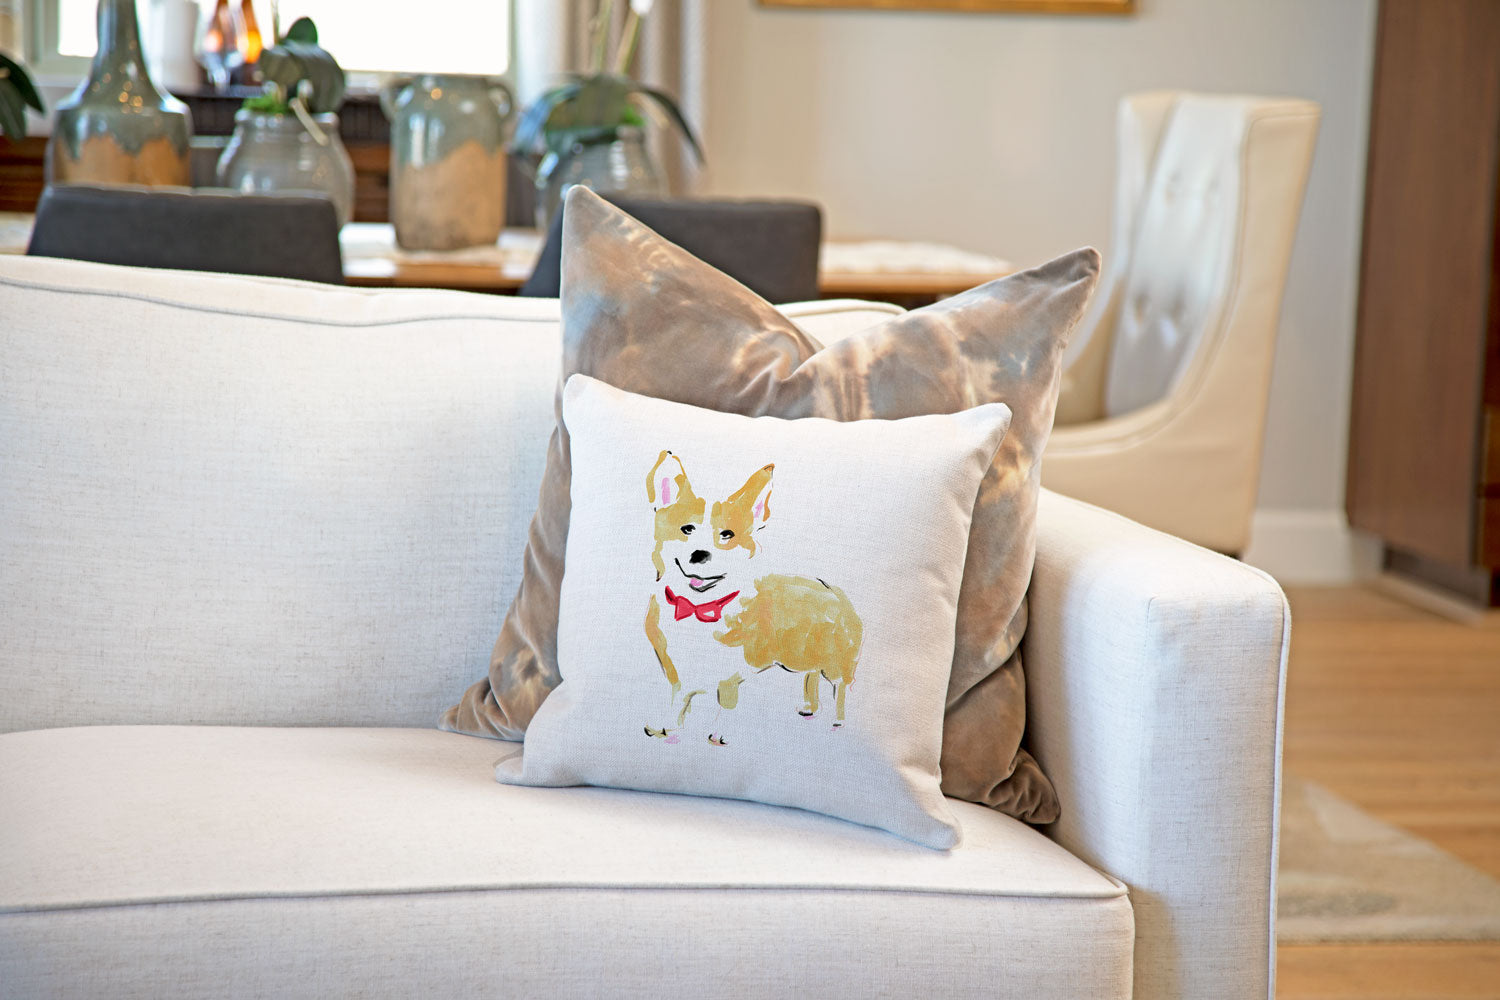 Conor Corgie Throw Pillow Cover - Dog Illustration Throw Pillow Cover Collection